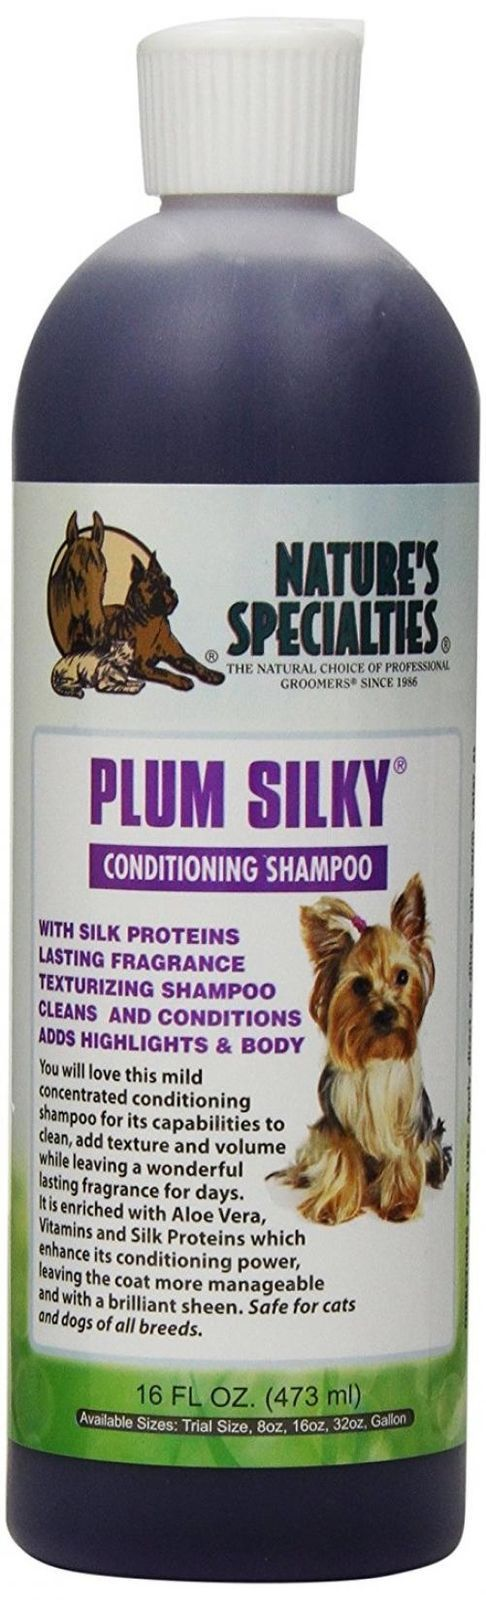 Plum Silky Shampoo & Conditioner for Dogs & Cats, 16-oz